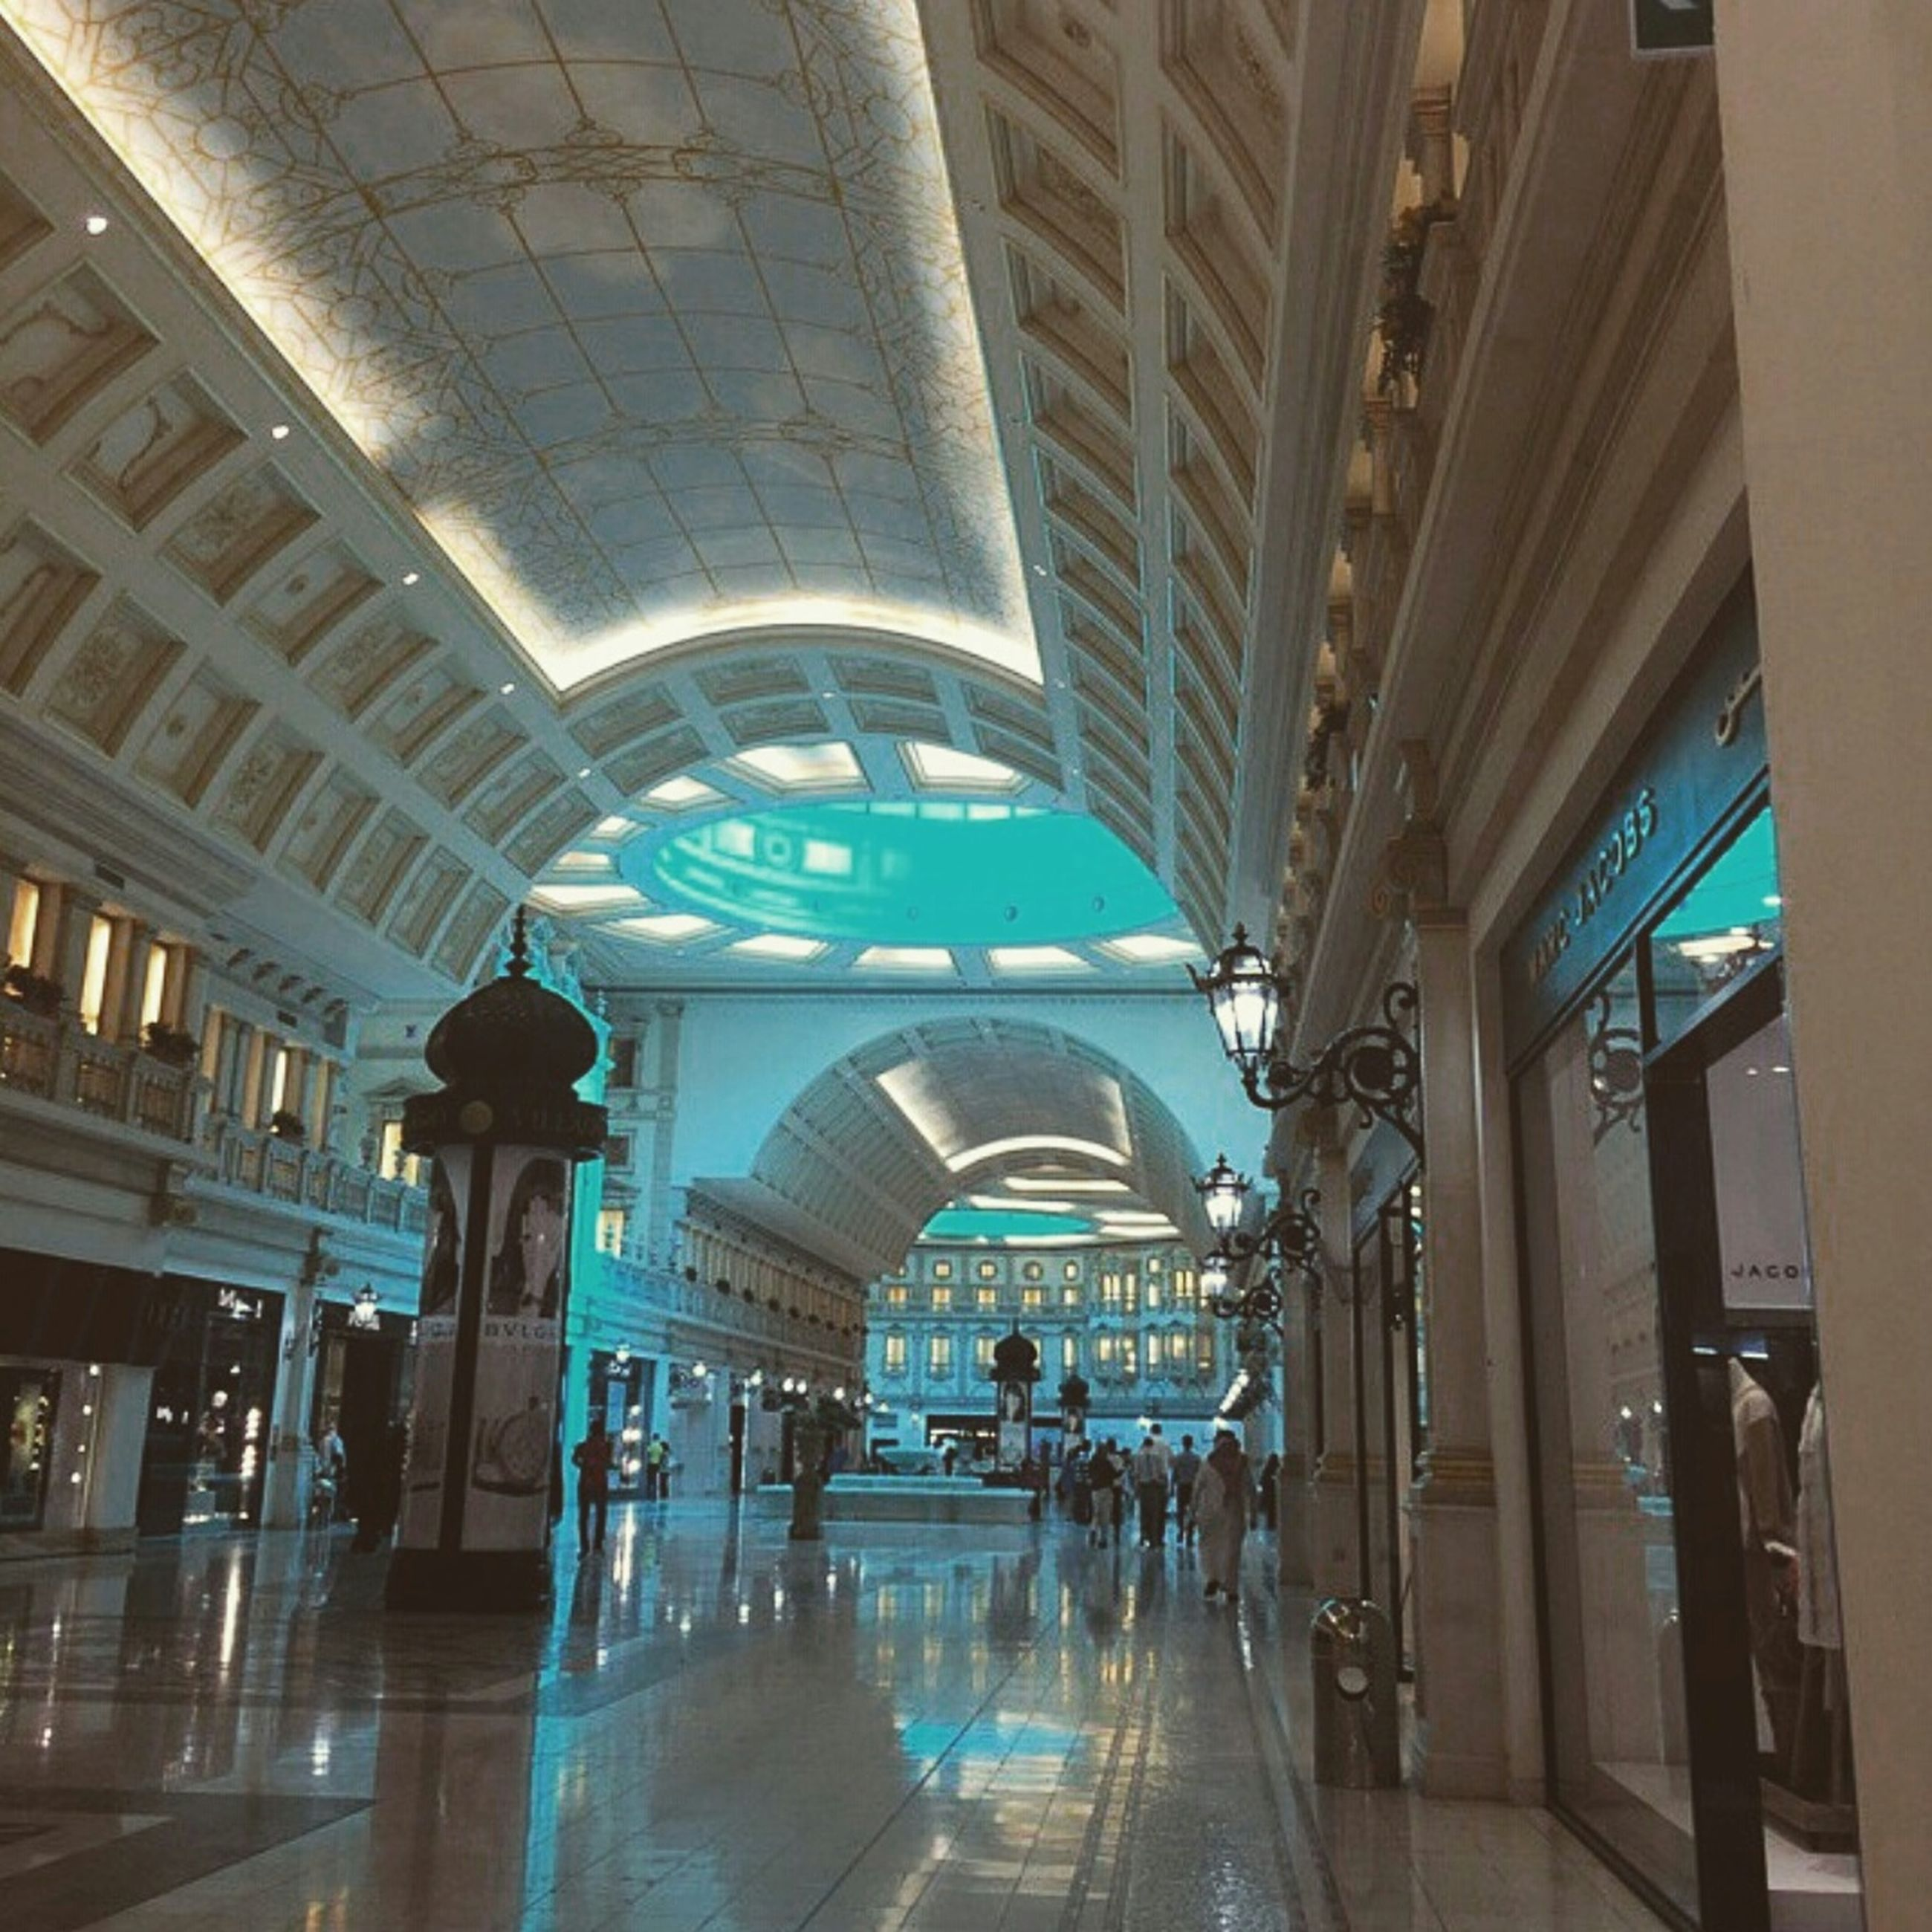 indoors, ceiling, architecture, built structure, illuminated, men, lifestyles, walking, person, large group of people, modern, railroad station, incidental people, travel, subway station, shopping mall, leisure activity, city life, flooring